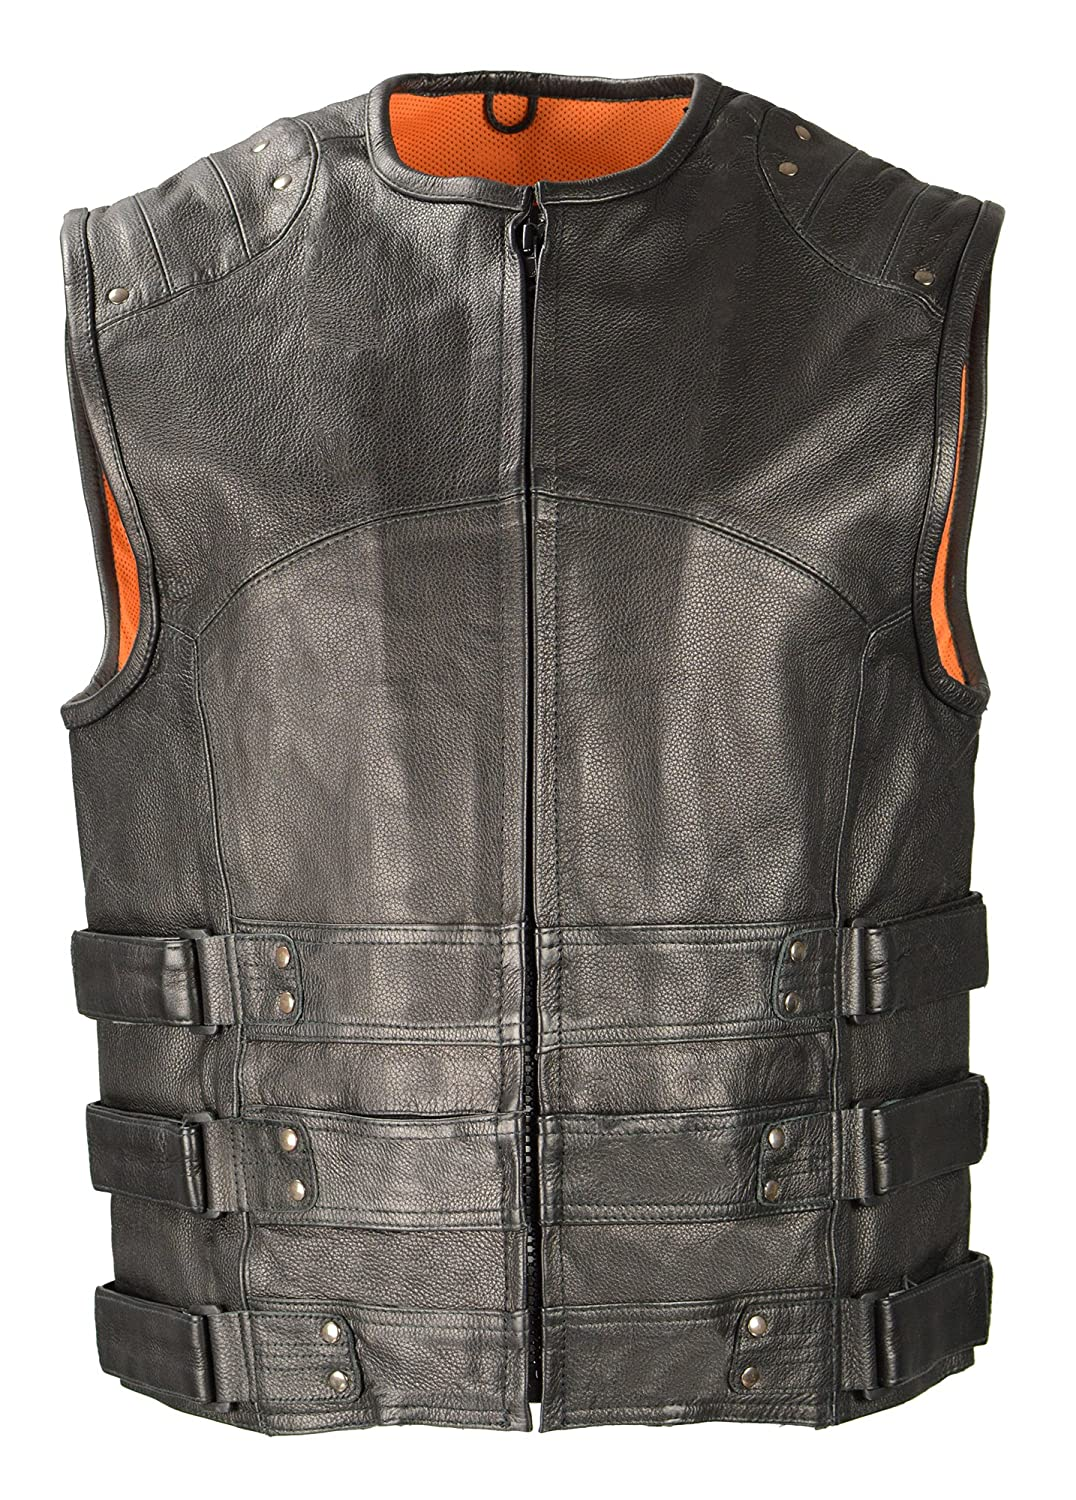 Biker Access-Men's Updated SWAT Style Biker Vest